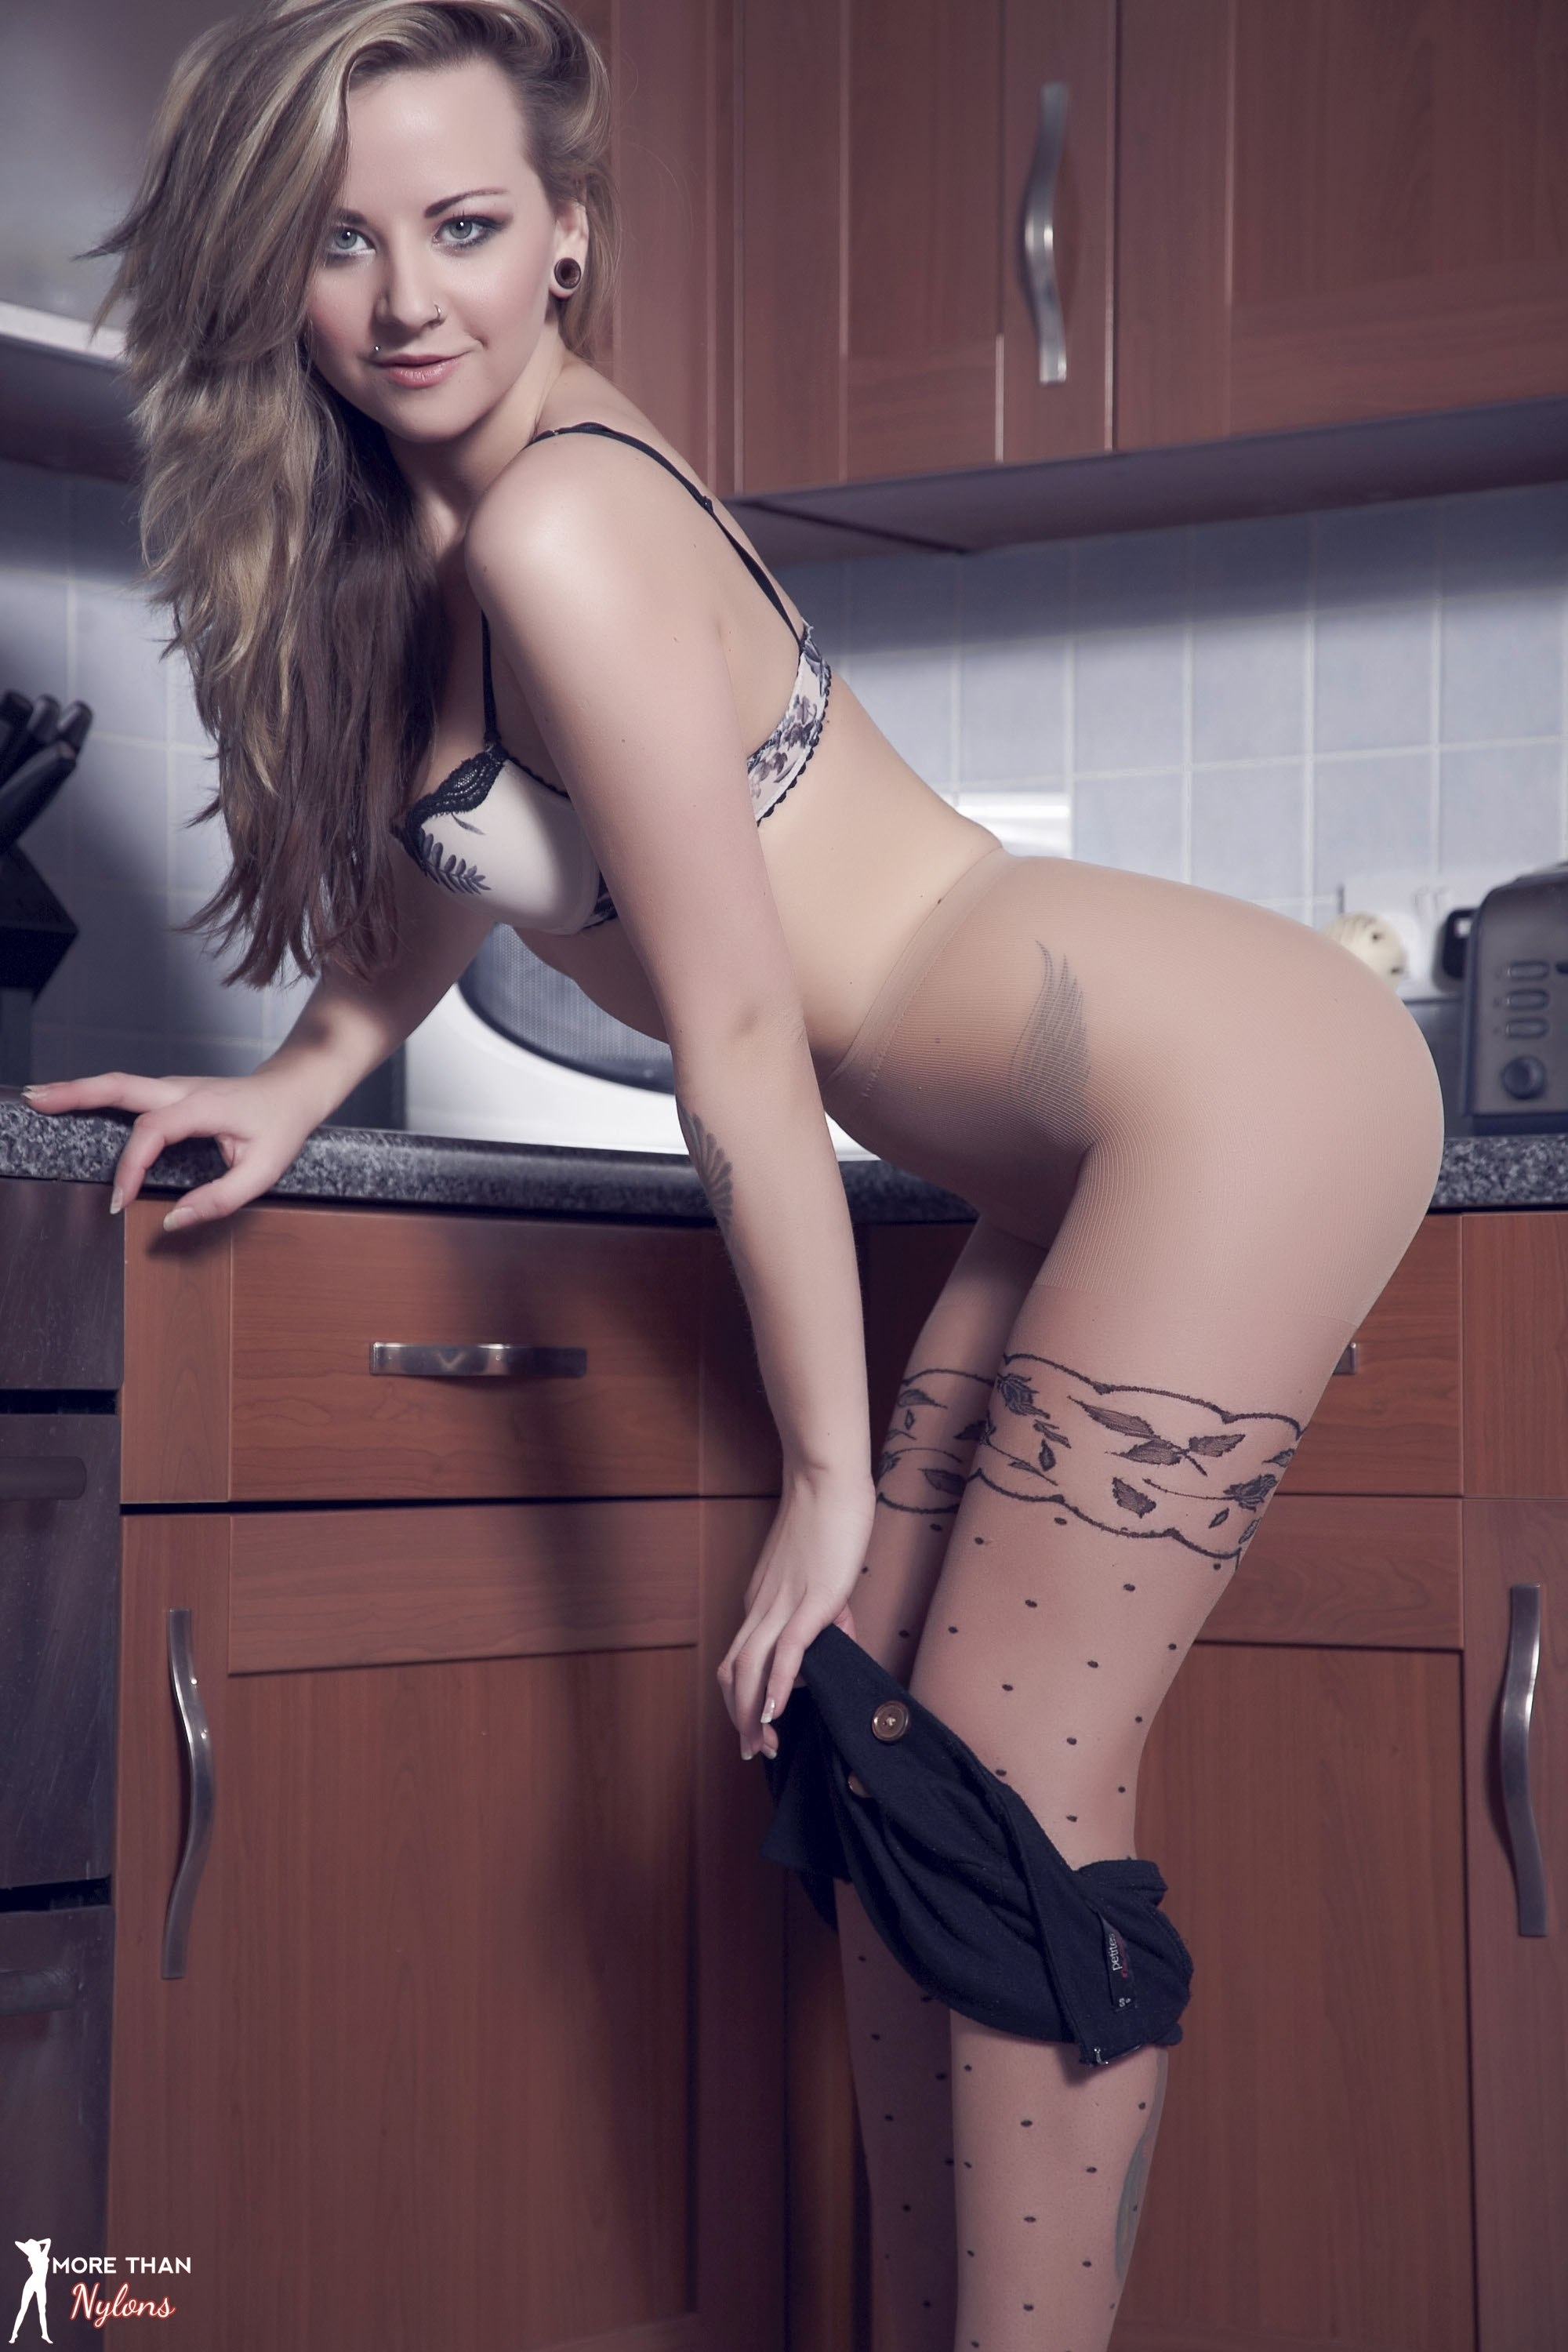 Stripping off her pantyhose